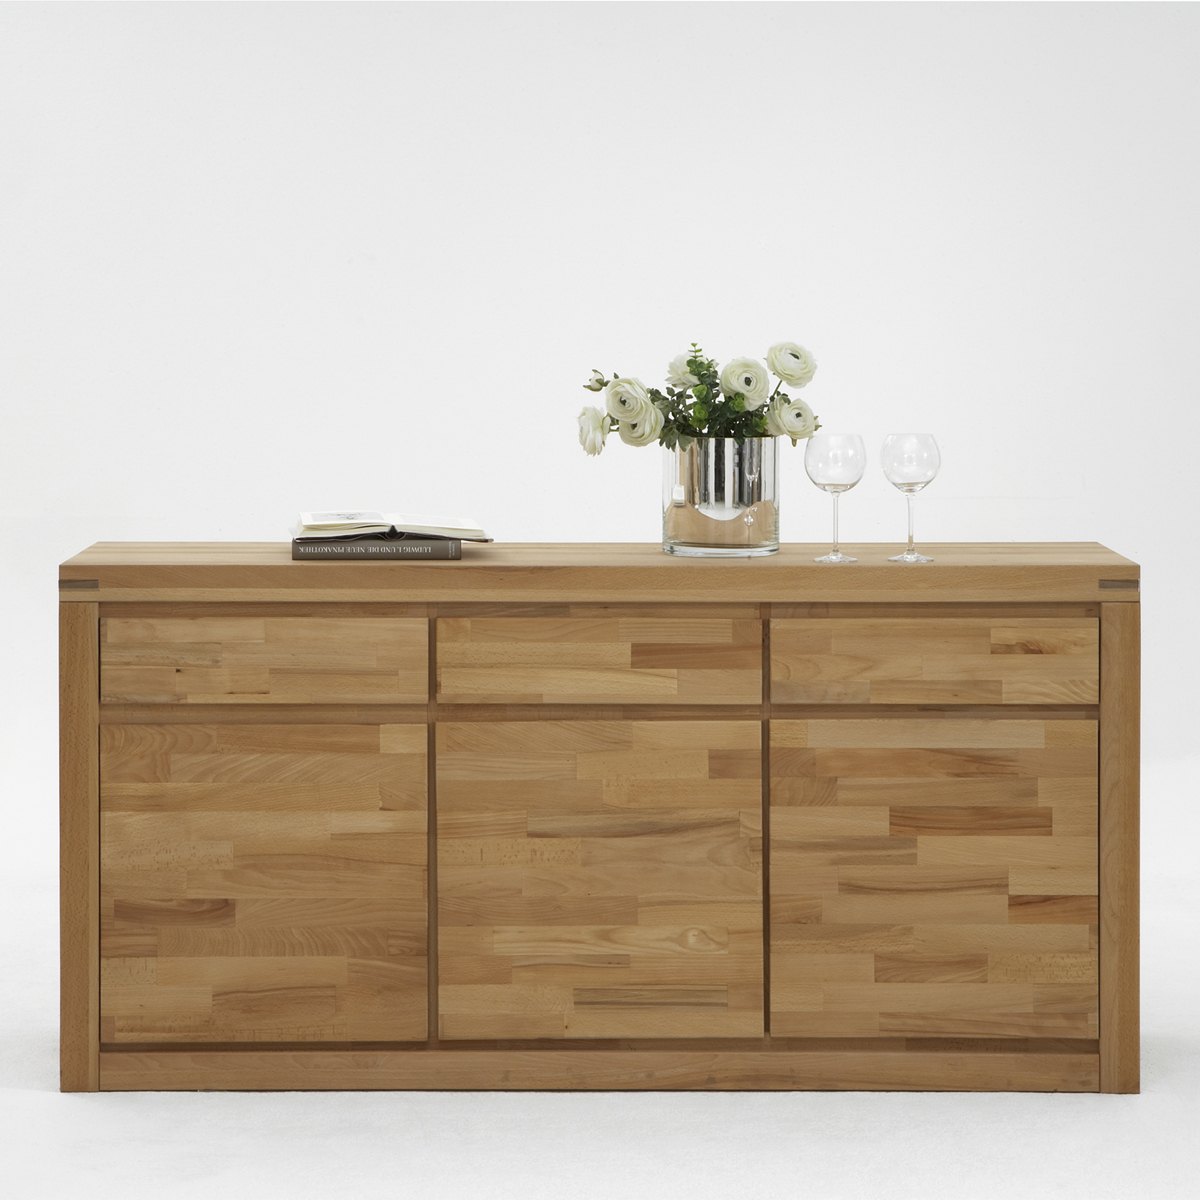 sideboard delft 6010 wohnzimmer kommode kernbuche massiv. Black Bedroom Furniture Sets. Home Design Ideas